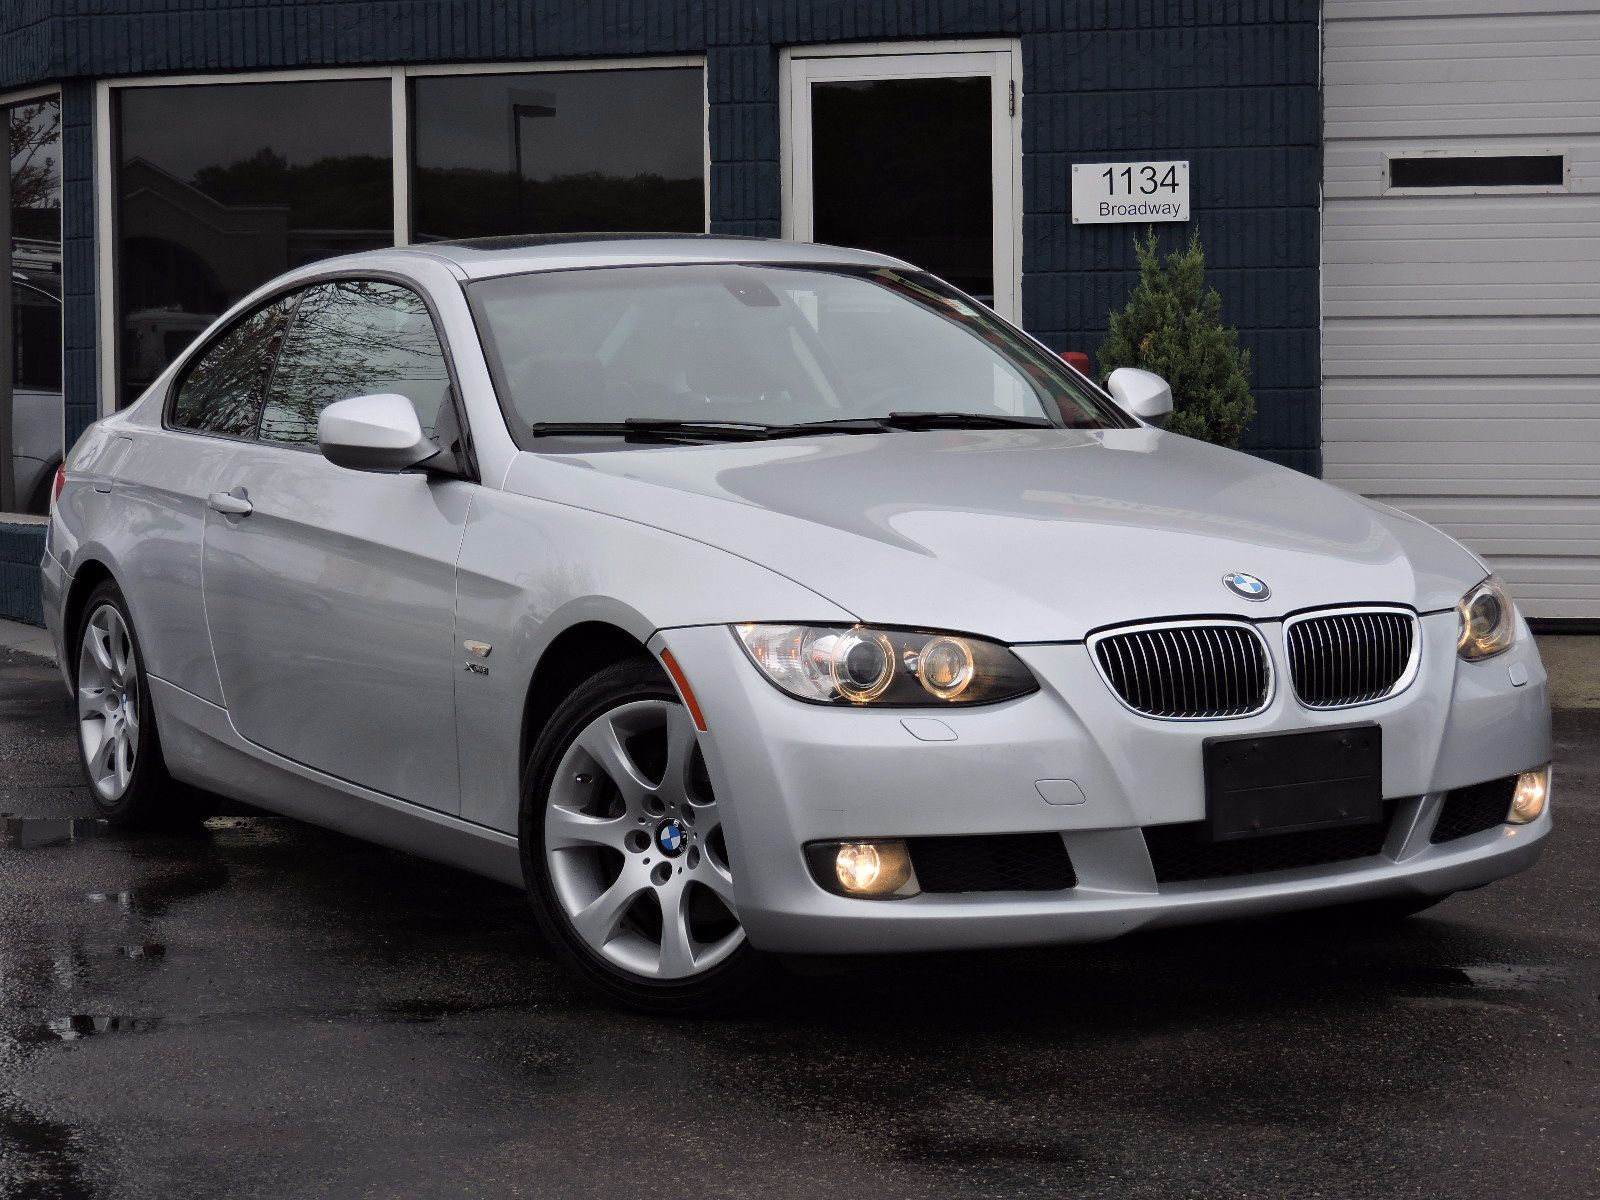 used 2010 bmw 328i xdrive at auto house usa saugus. Black Bedroom Furniture Sets. Home Design Ideas